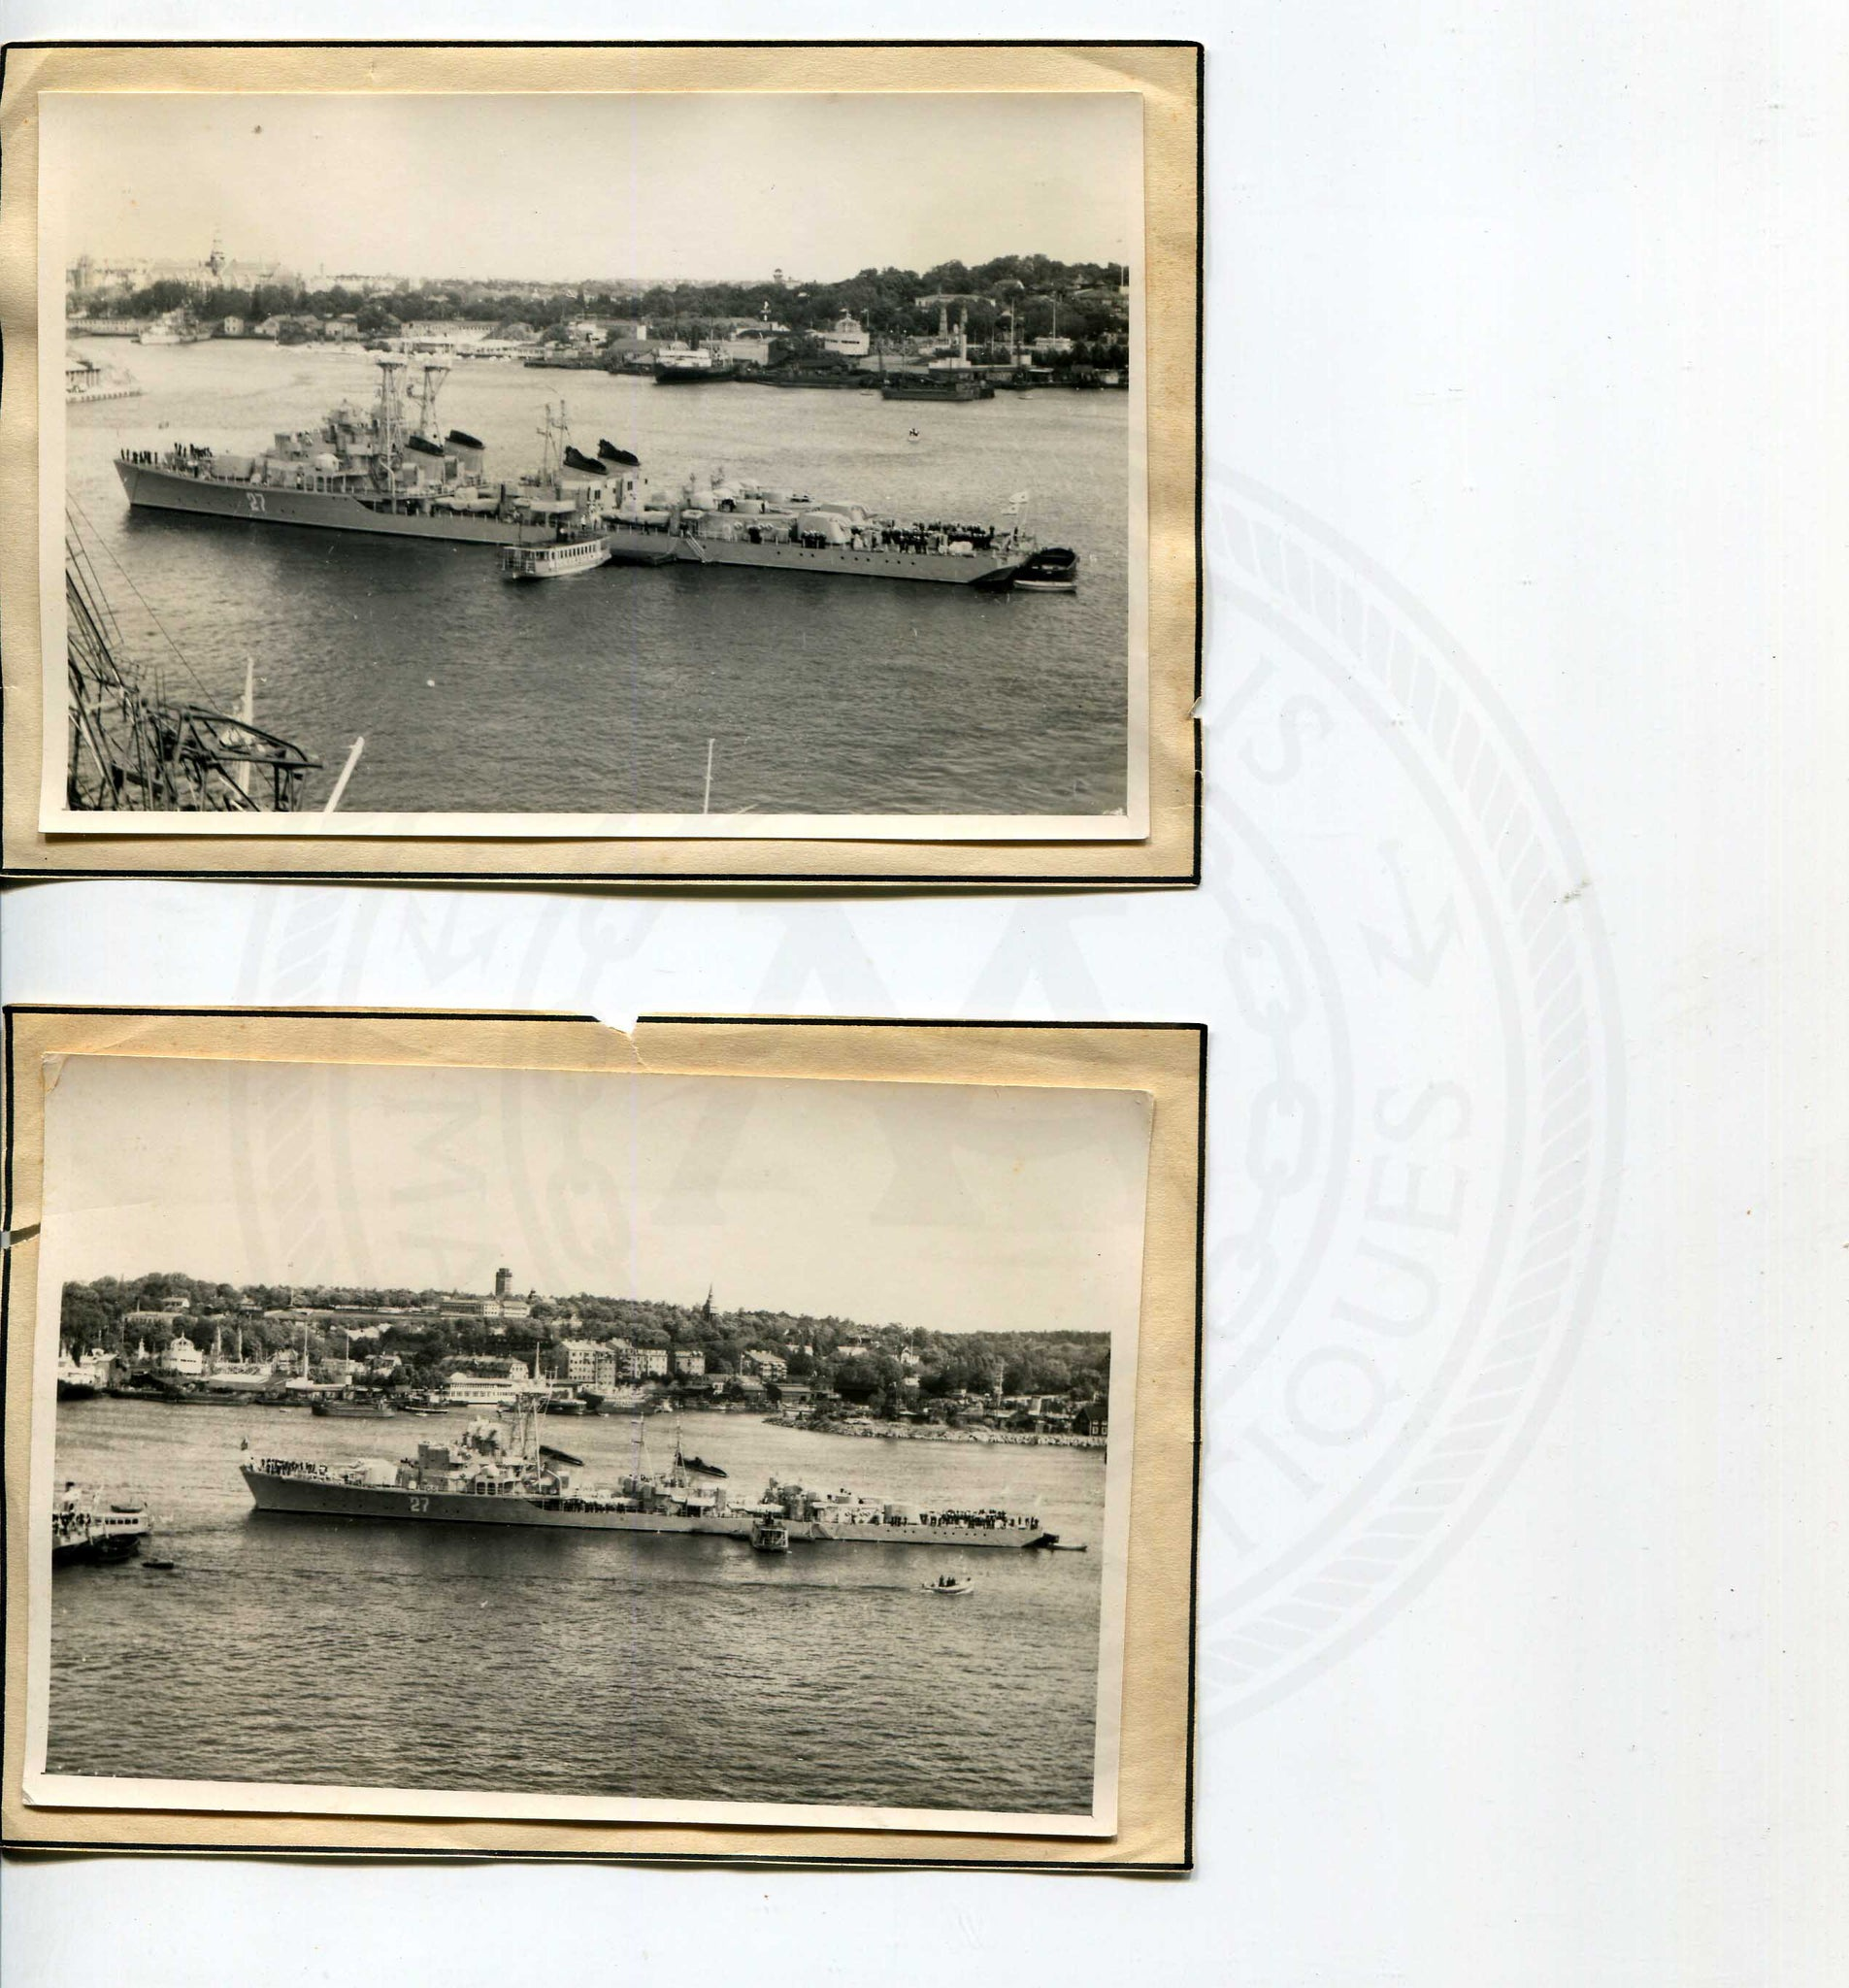 Official U.S. Navy photo of Soviet warship - Annapolis Maritime Antiques